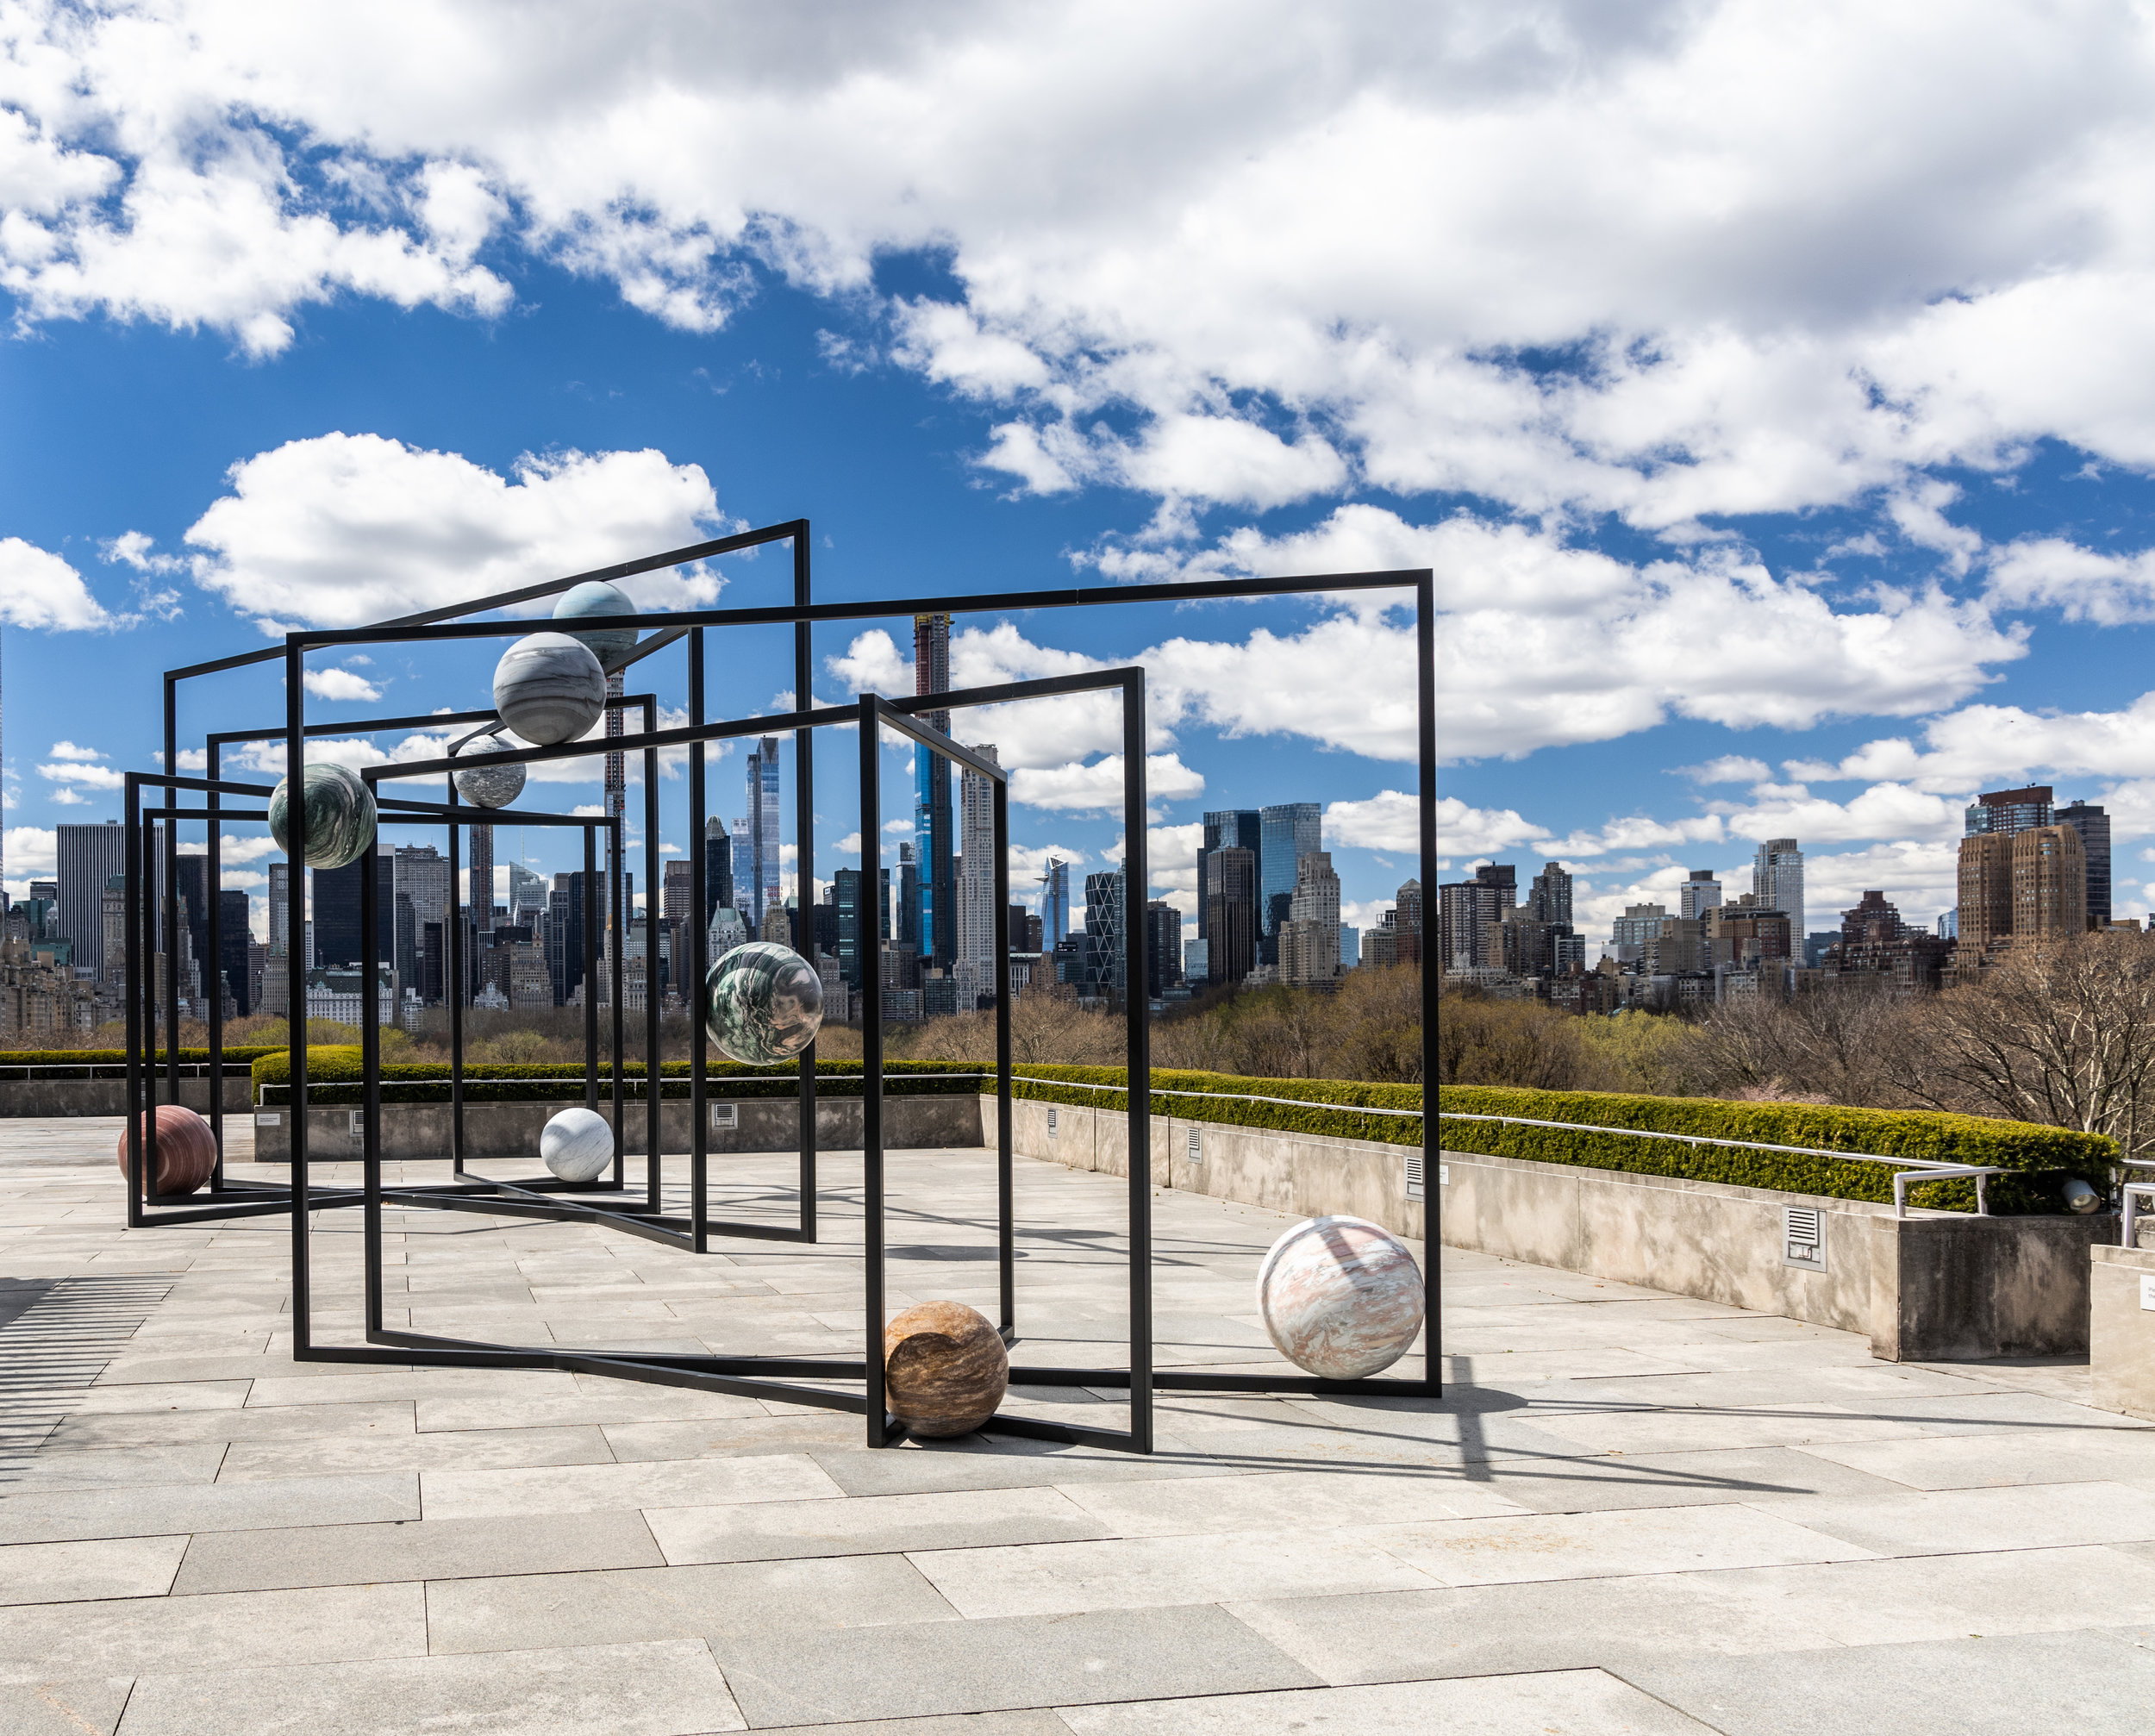 Alicja Kwade (b.1979, Poland). The Roof Garden Commission: Alicja Kwade, ParaPivot. Installation view, The Metropolitan Museum of Art, 2019. Courtesy of the artist; 303 Gallery, New York; KÖNIG GALERIE, Berlin/London; and kamel mennour, Paris/London. Image credit: The Metropolitan Museum of Art, Photograph by Hyla Skopitz